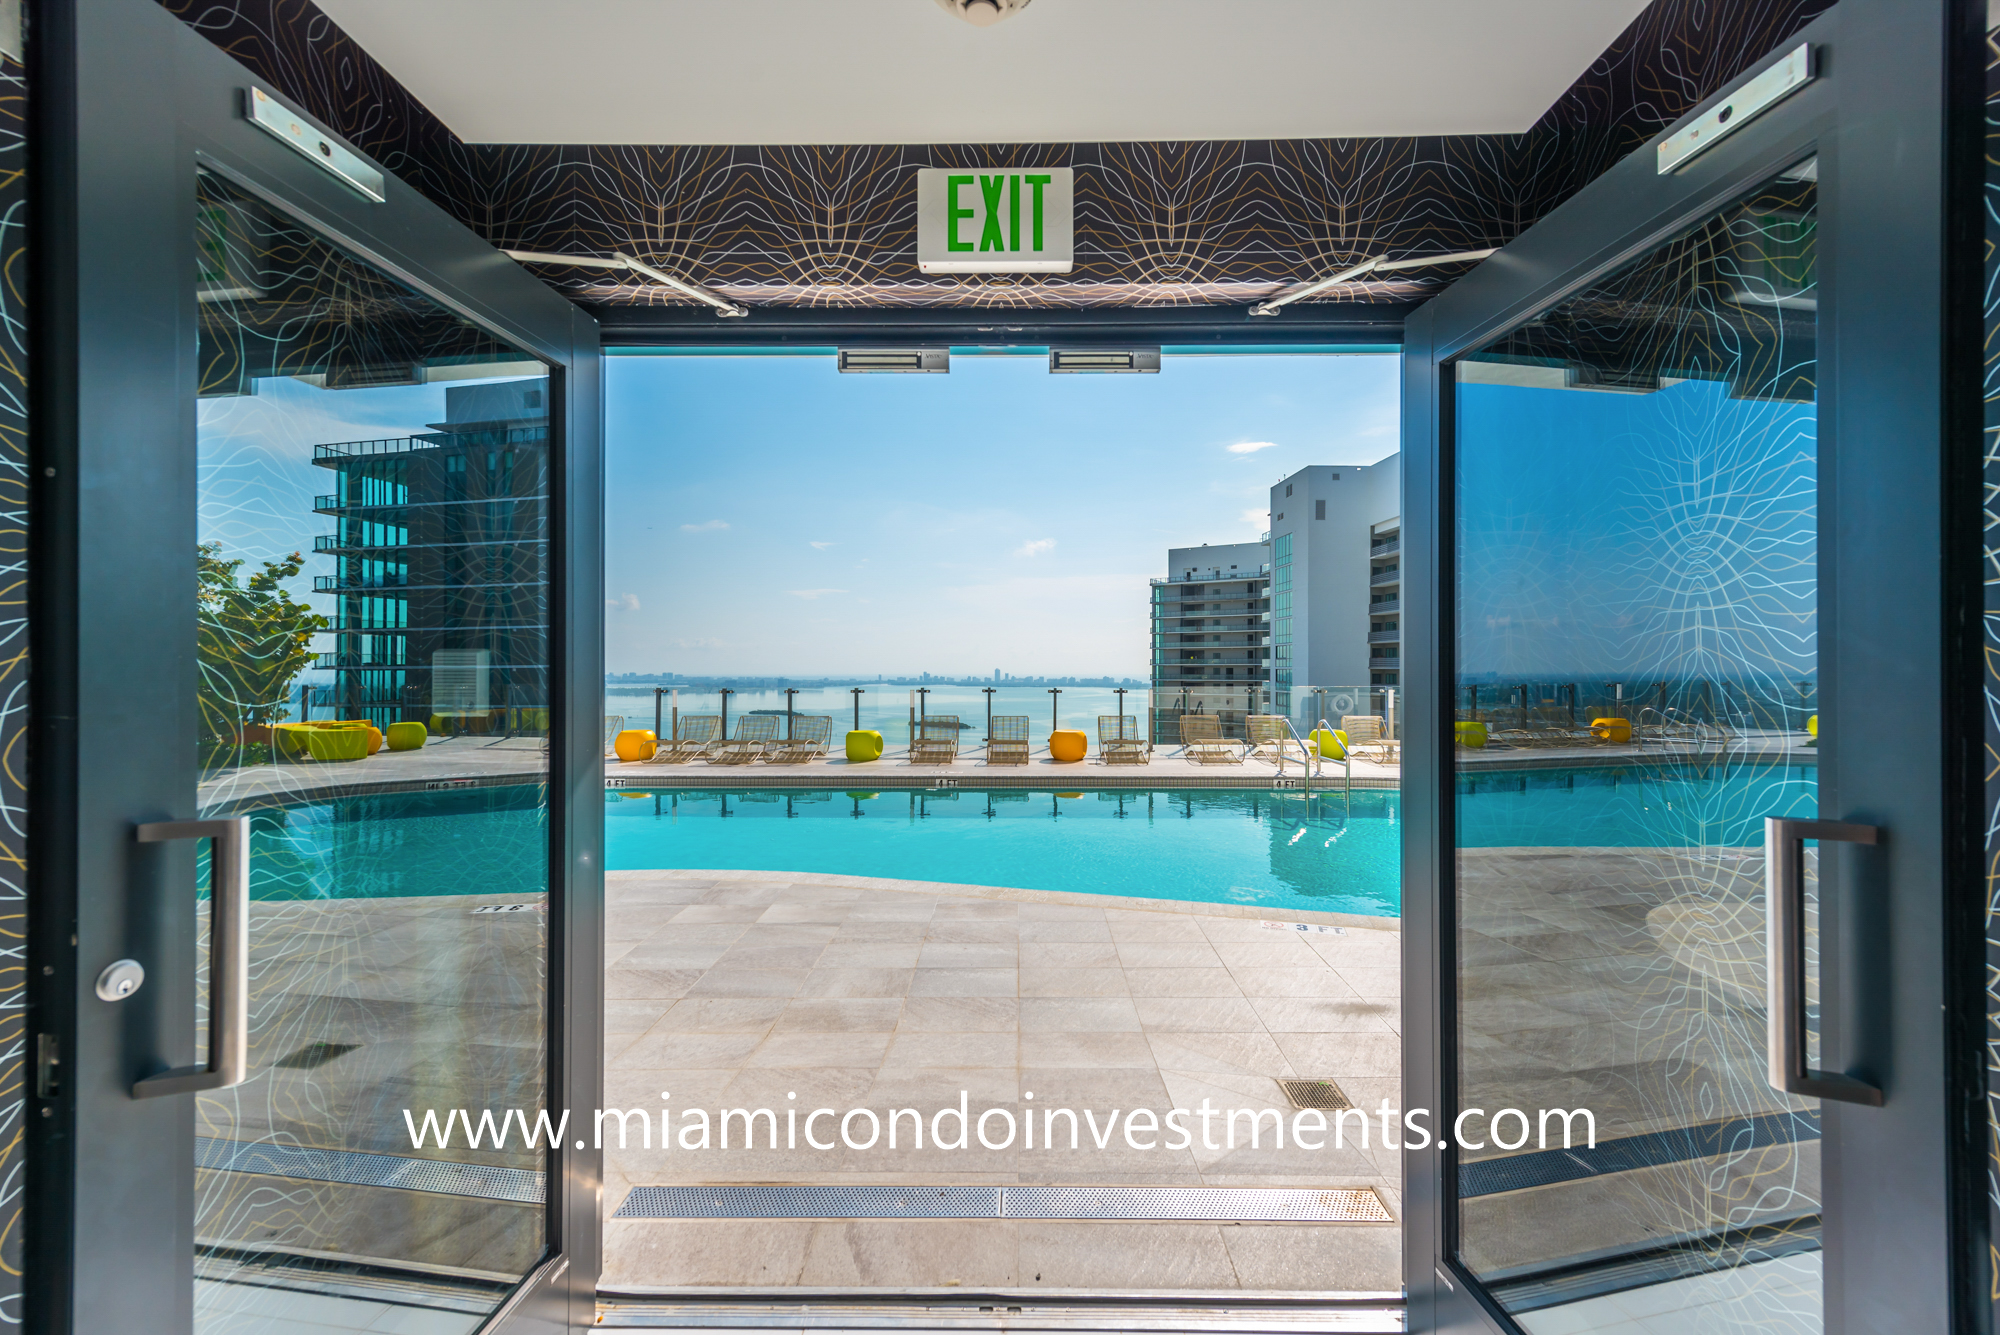 entrance to rooftop pool deck